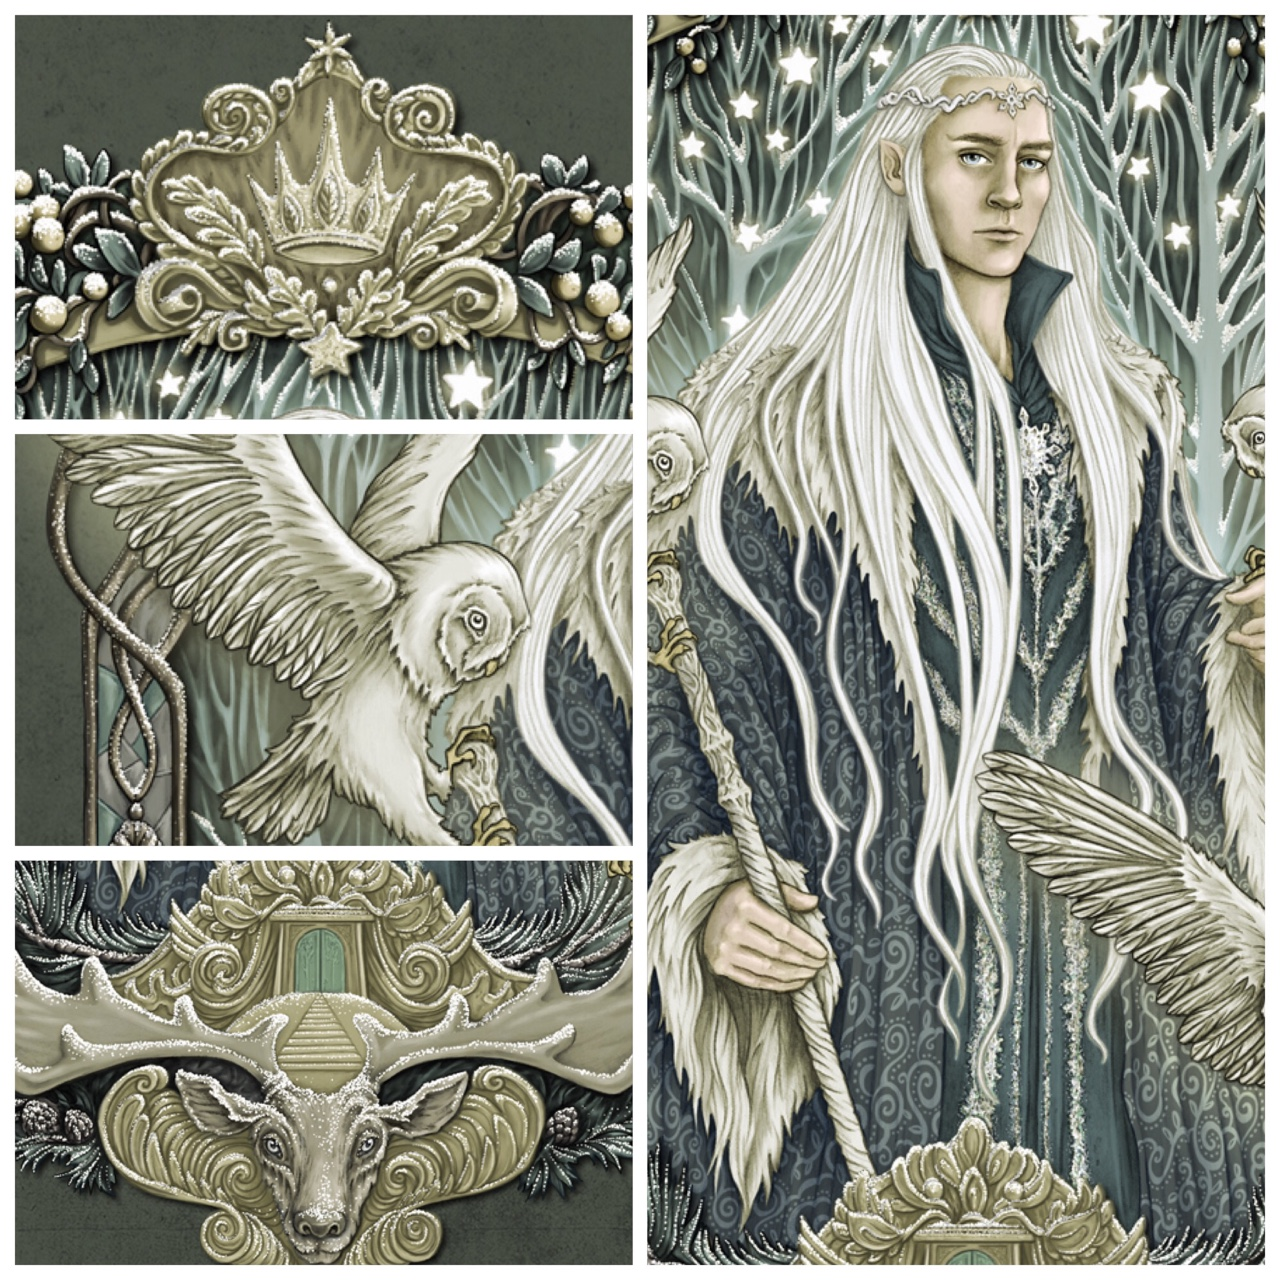 I'm doing a giveaway of this Thranduil print on Instagram. My account name on Instagram is  eevanikunen  =o)